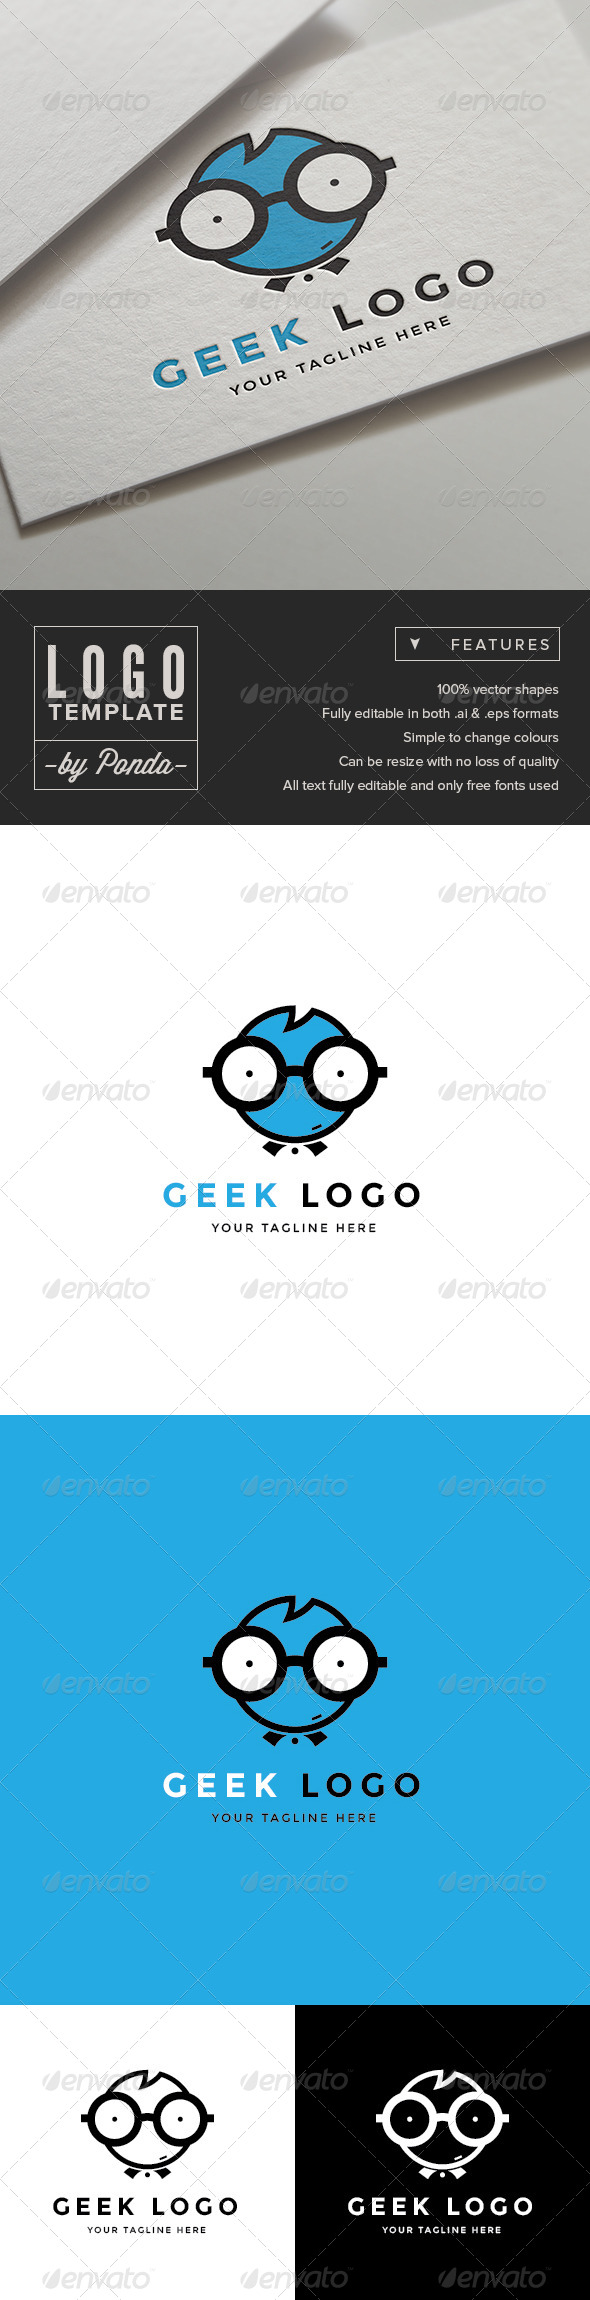 GraphicRiver Geek Logo Template 7504113